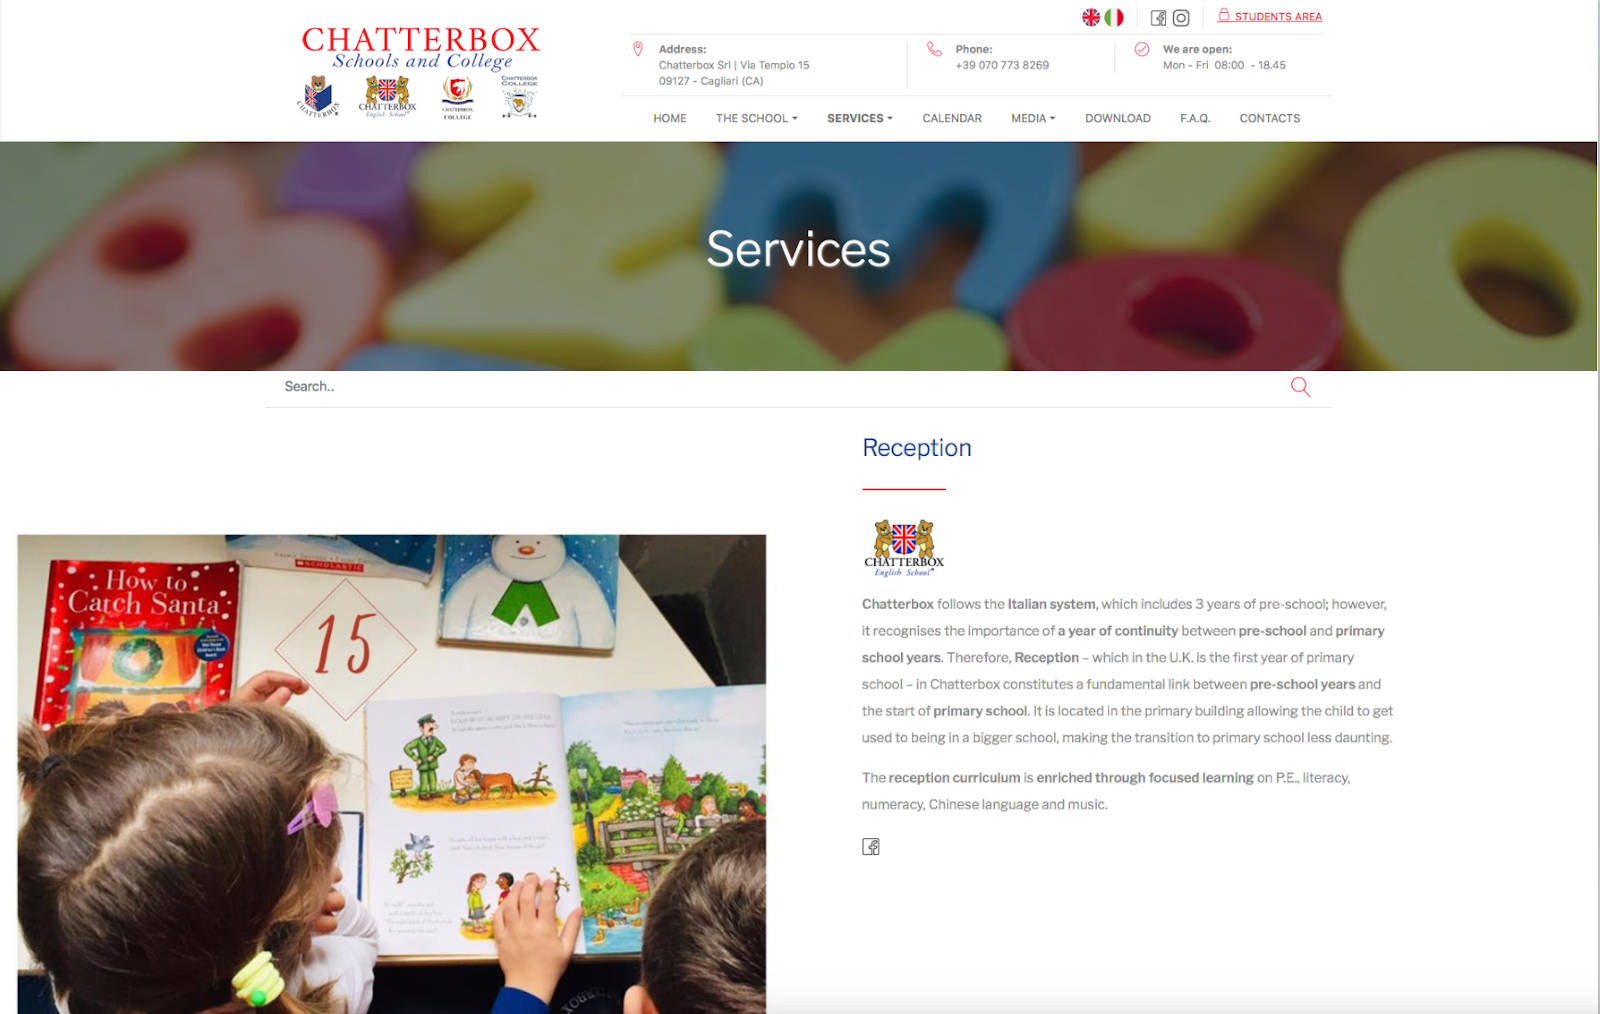 chatterbox schools and college servizi